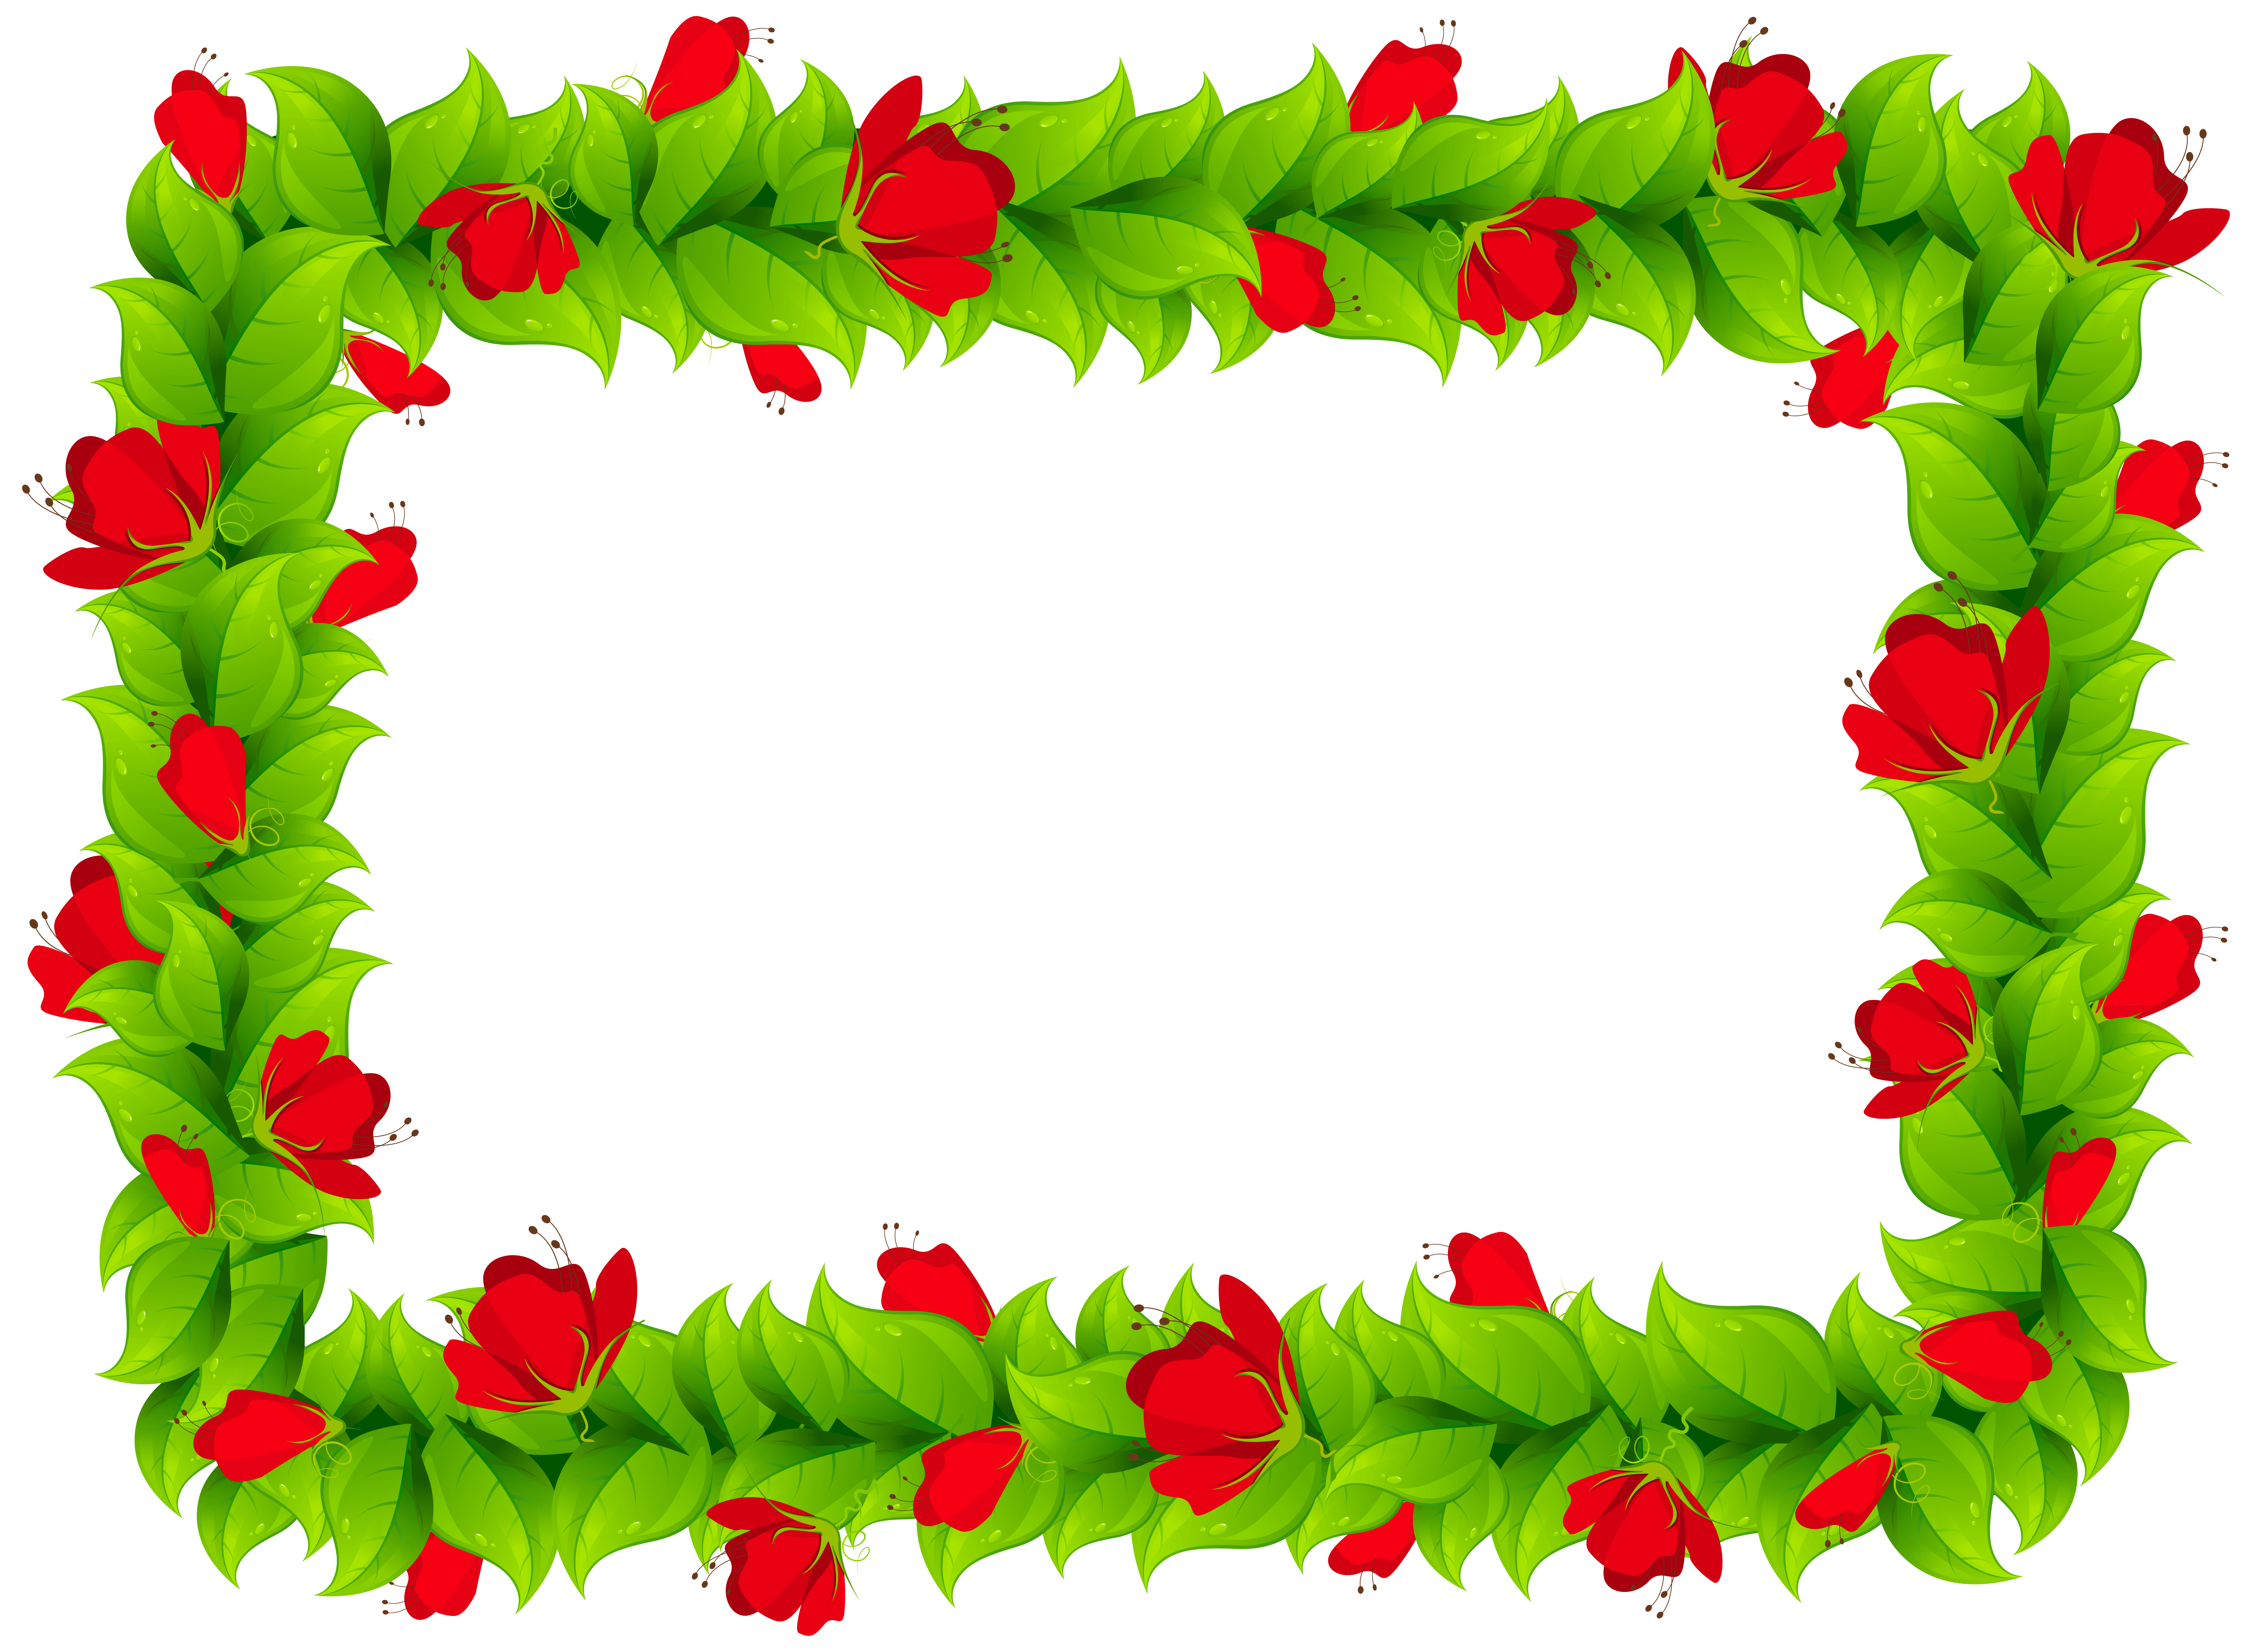 png black and white Floral border png image. Clipart borders and frame.